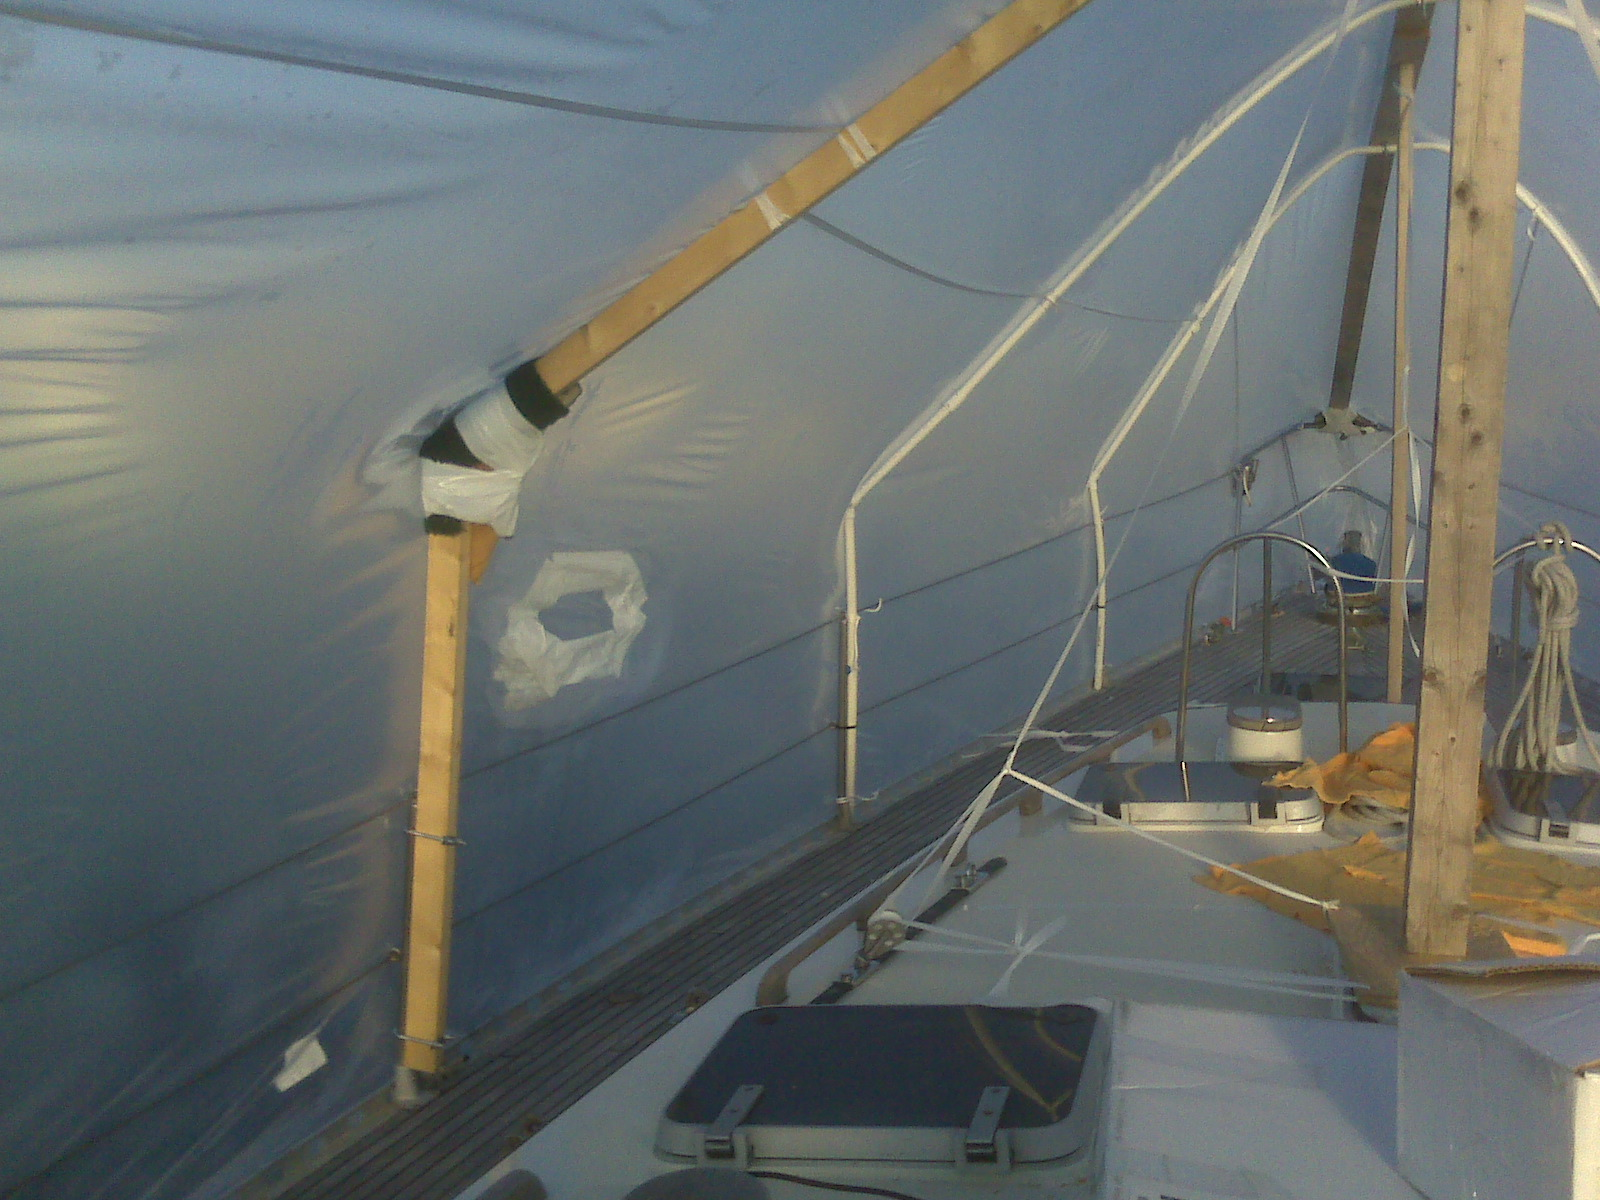 living under shrink wrap living aboard a sailboat during a